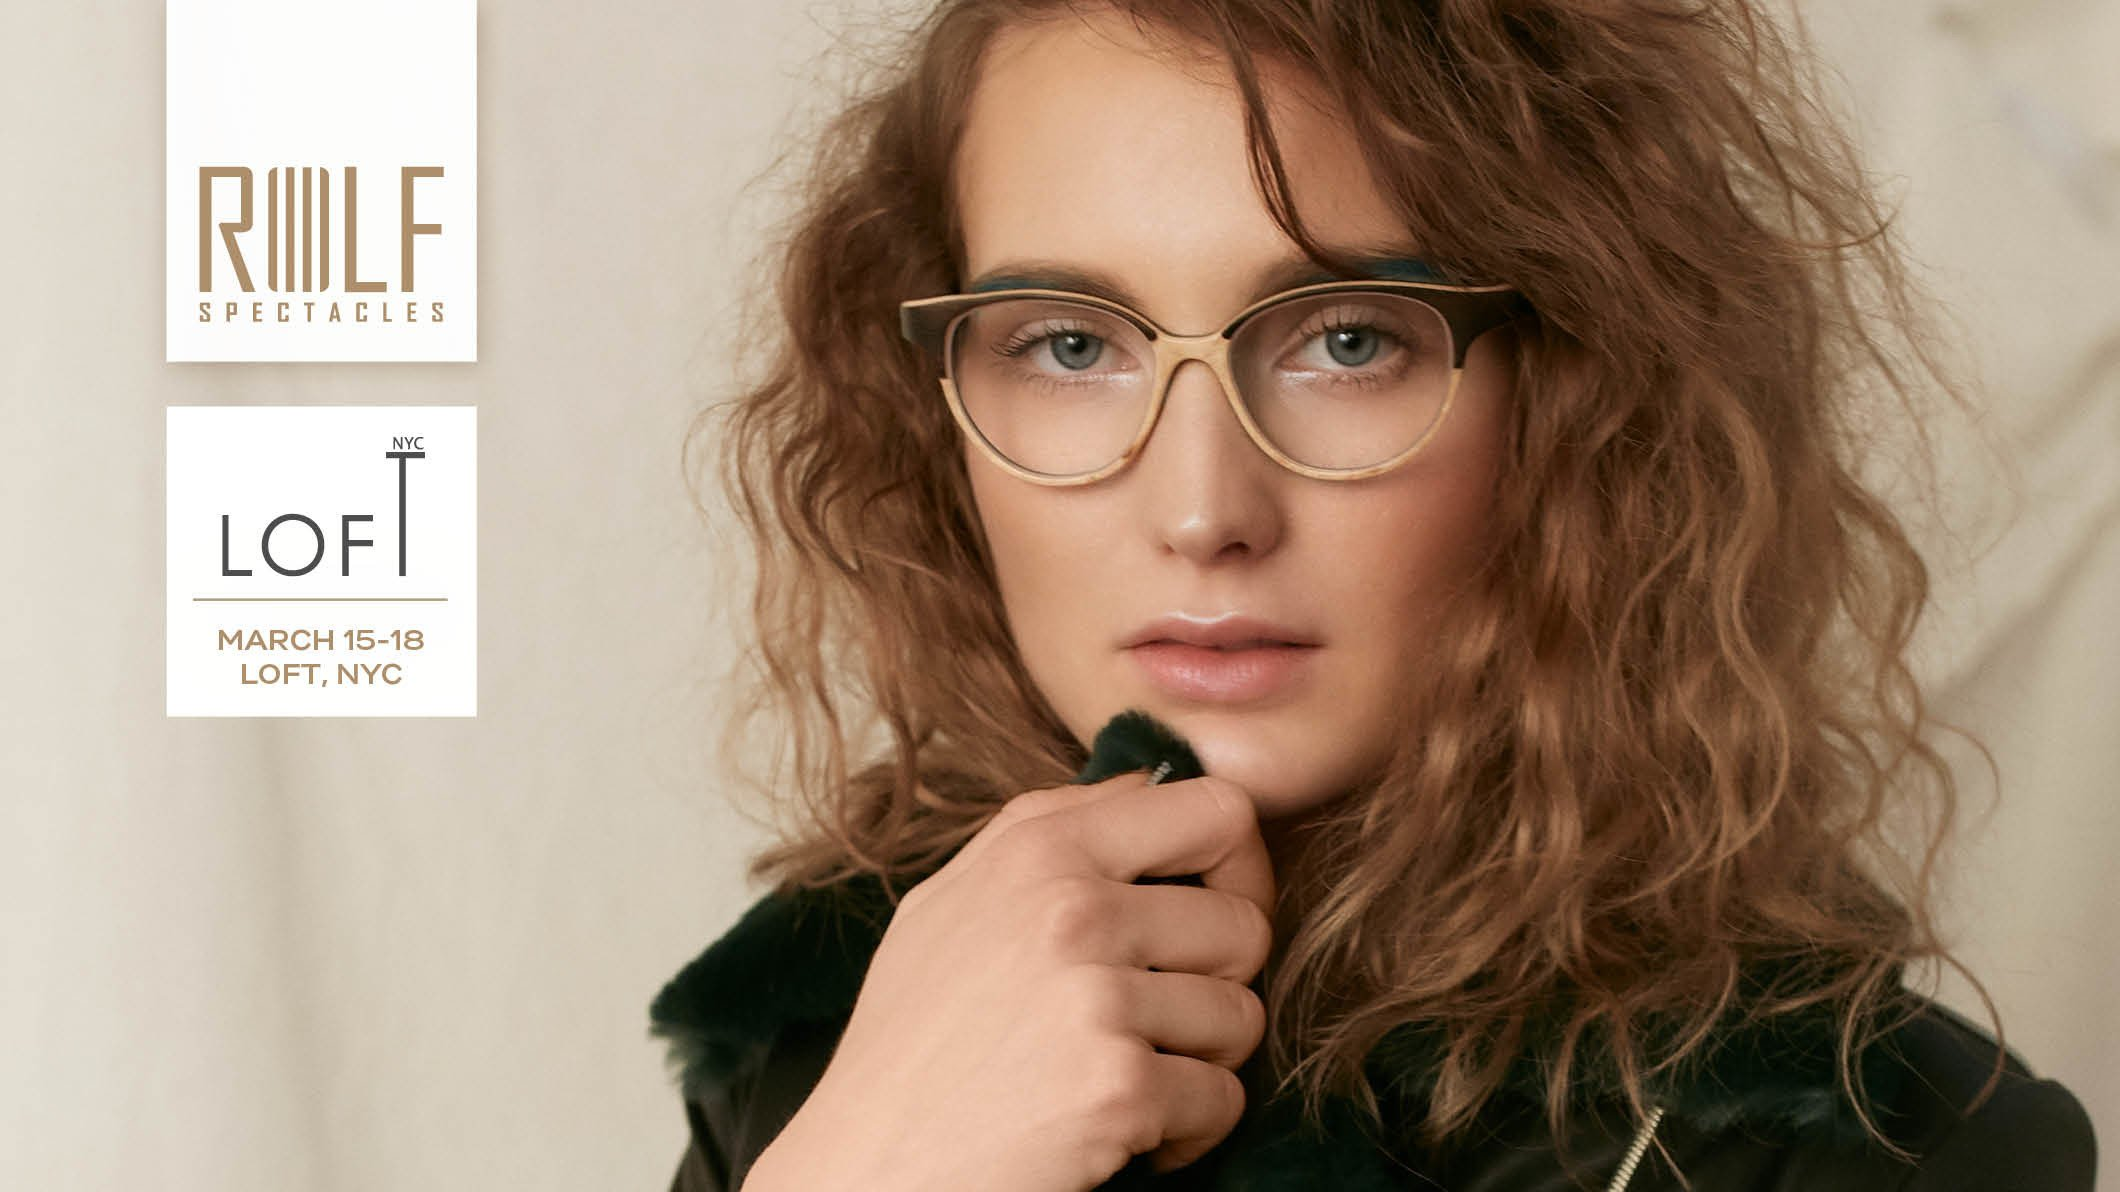 News About Rolf Spectacles Glasses Products Exibitions